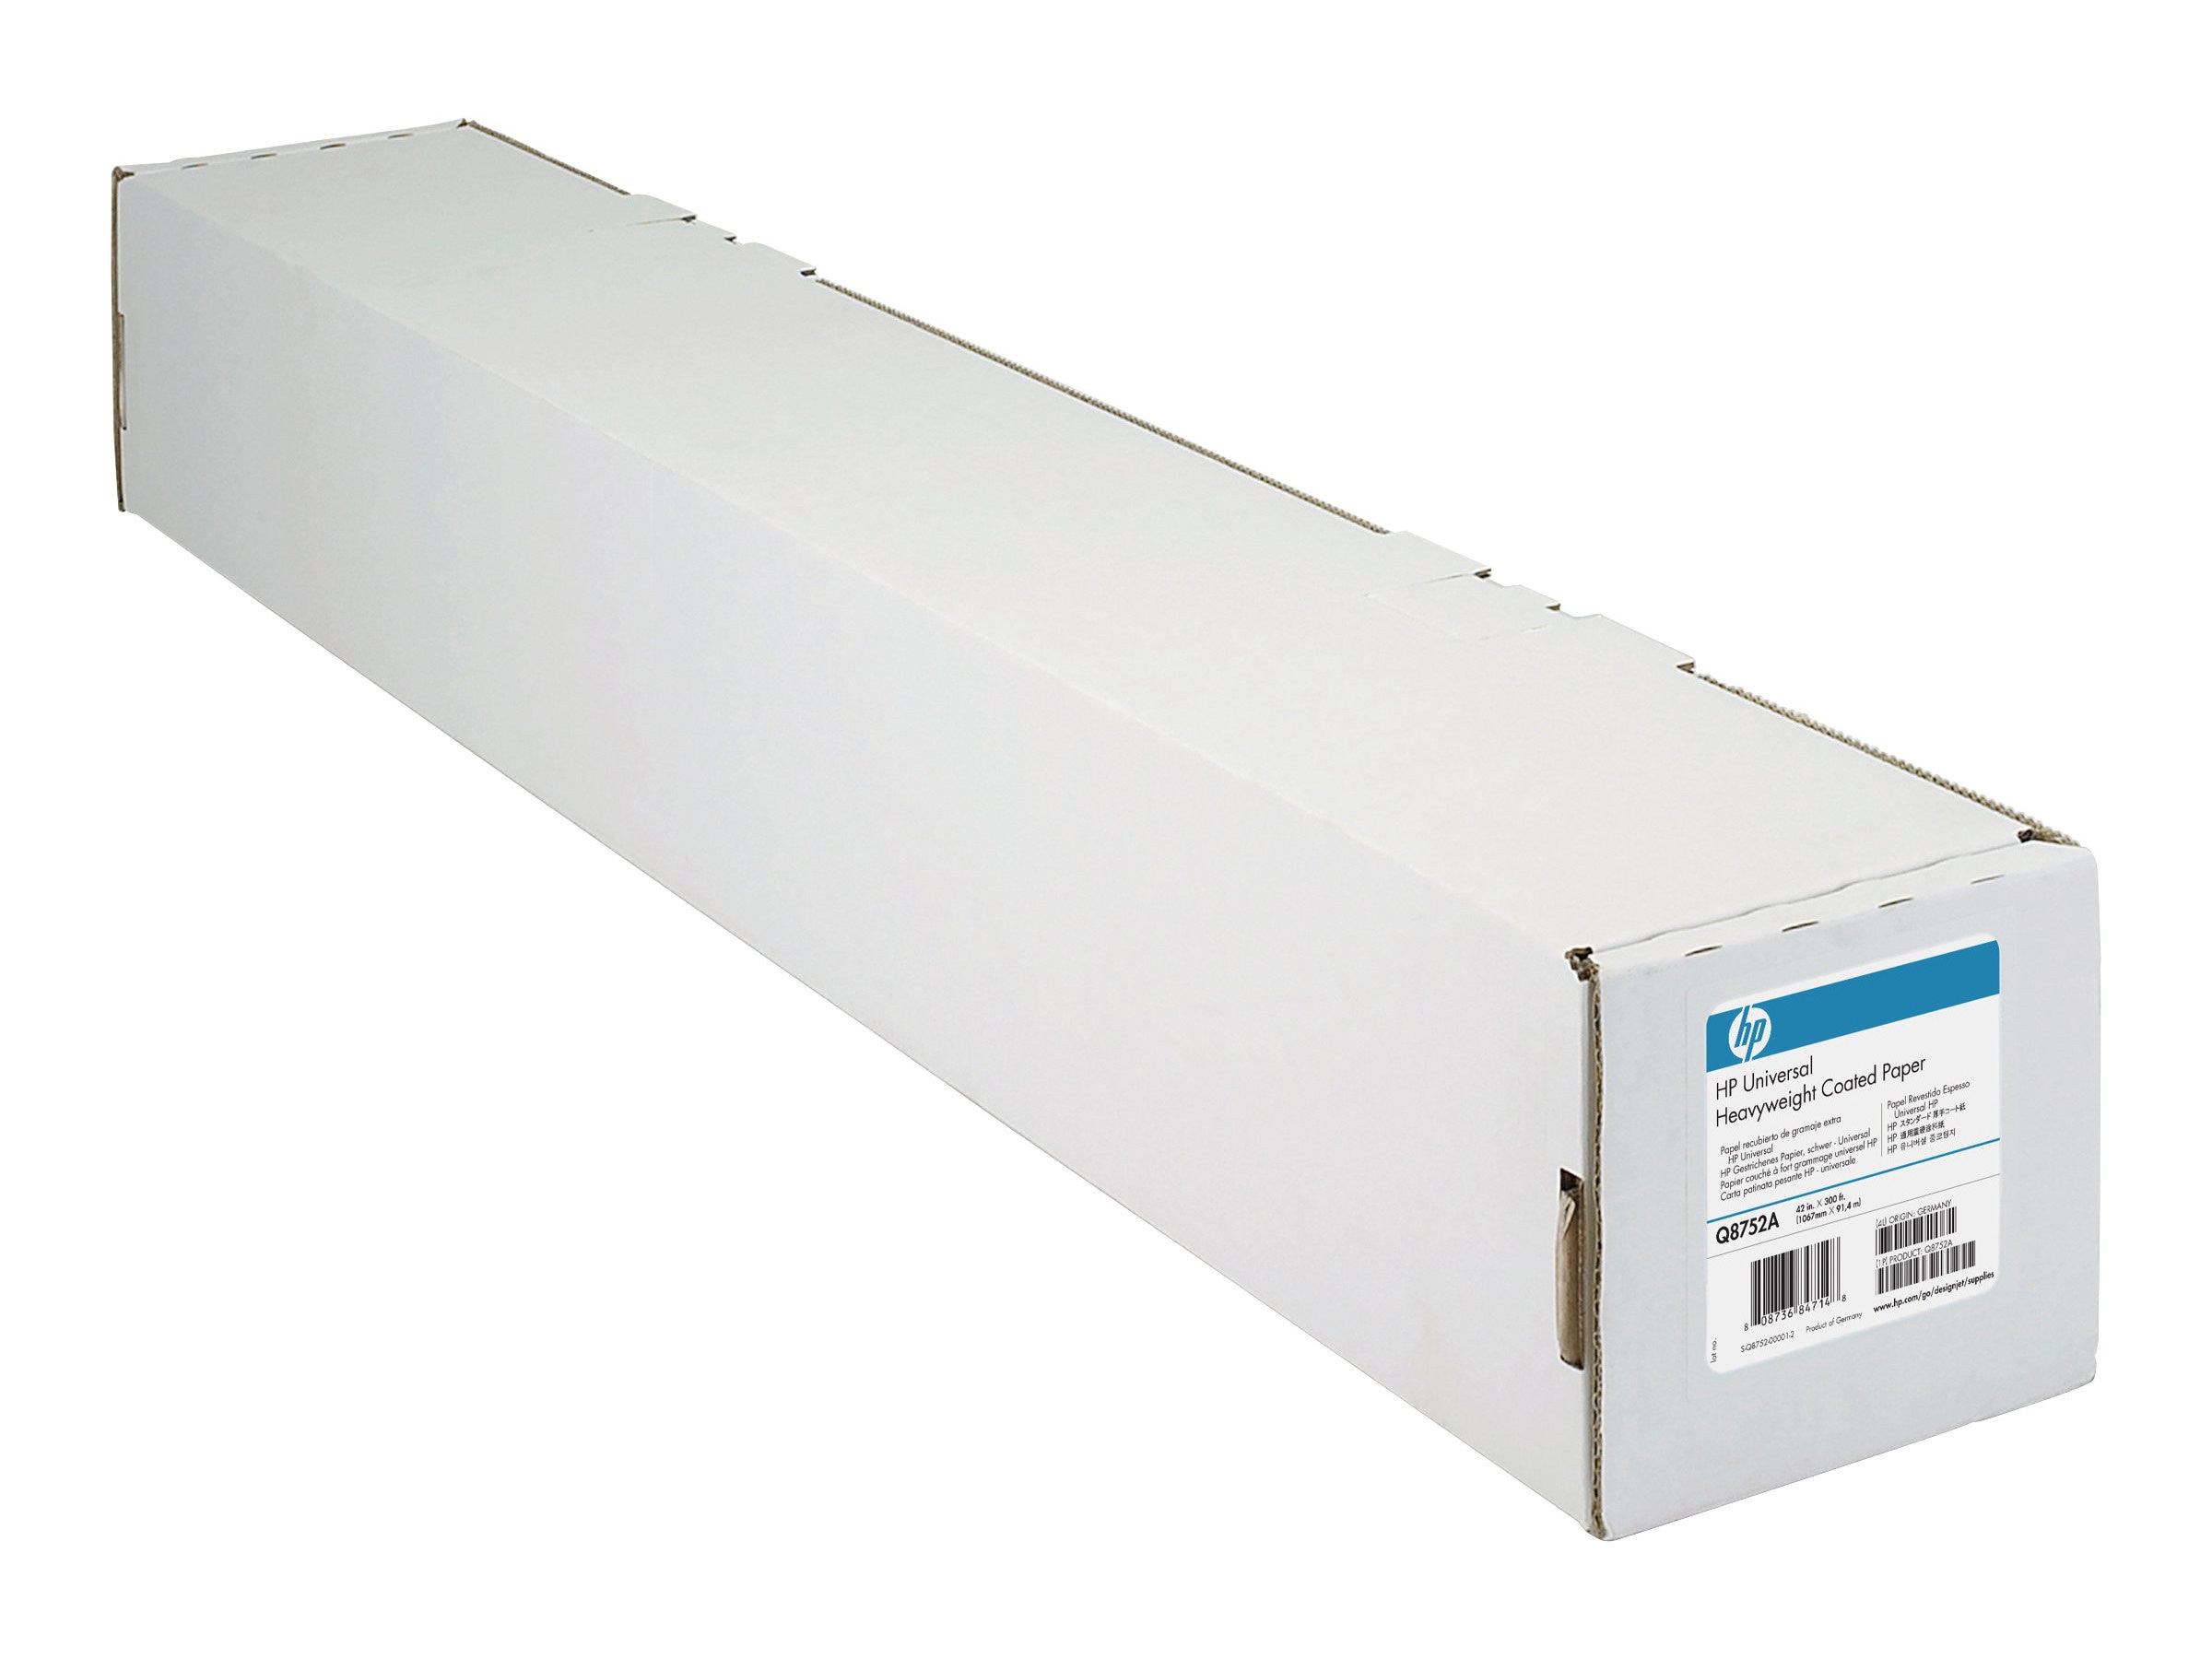 HP 36in x 300ft Coated Paper for DesignJet Printers, C6980A